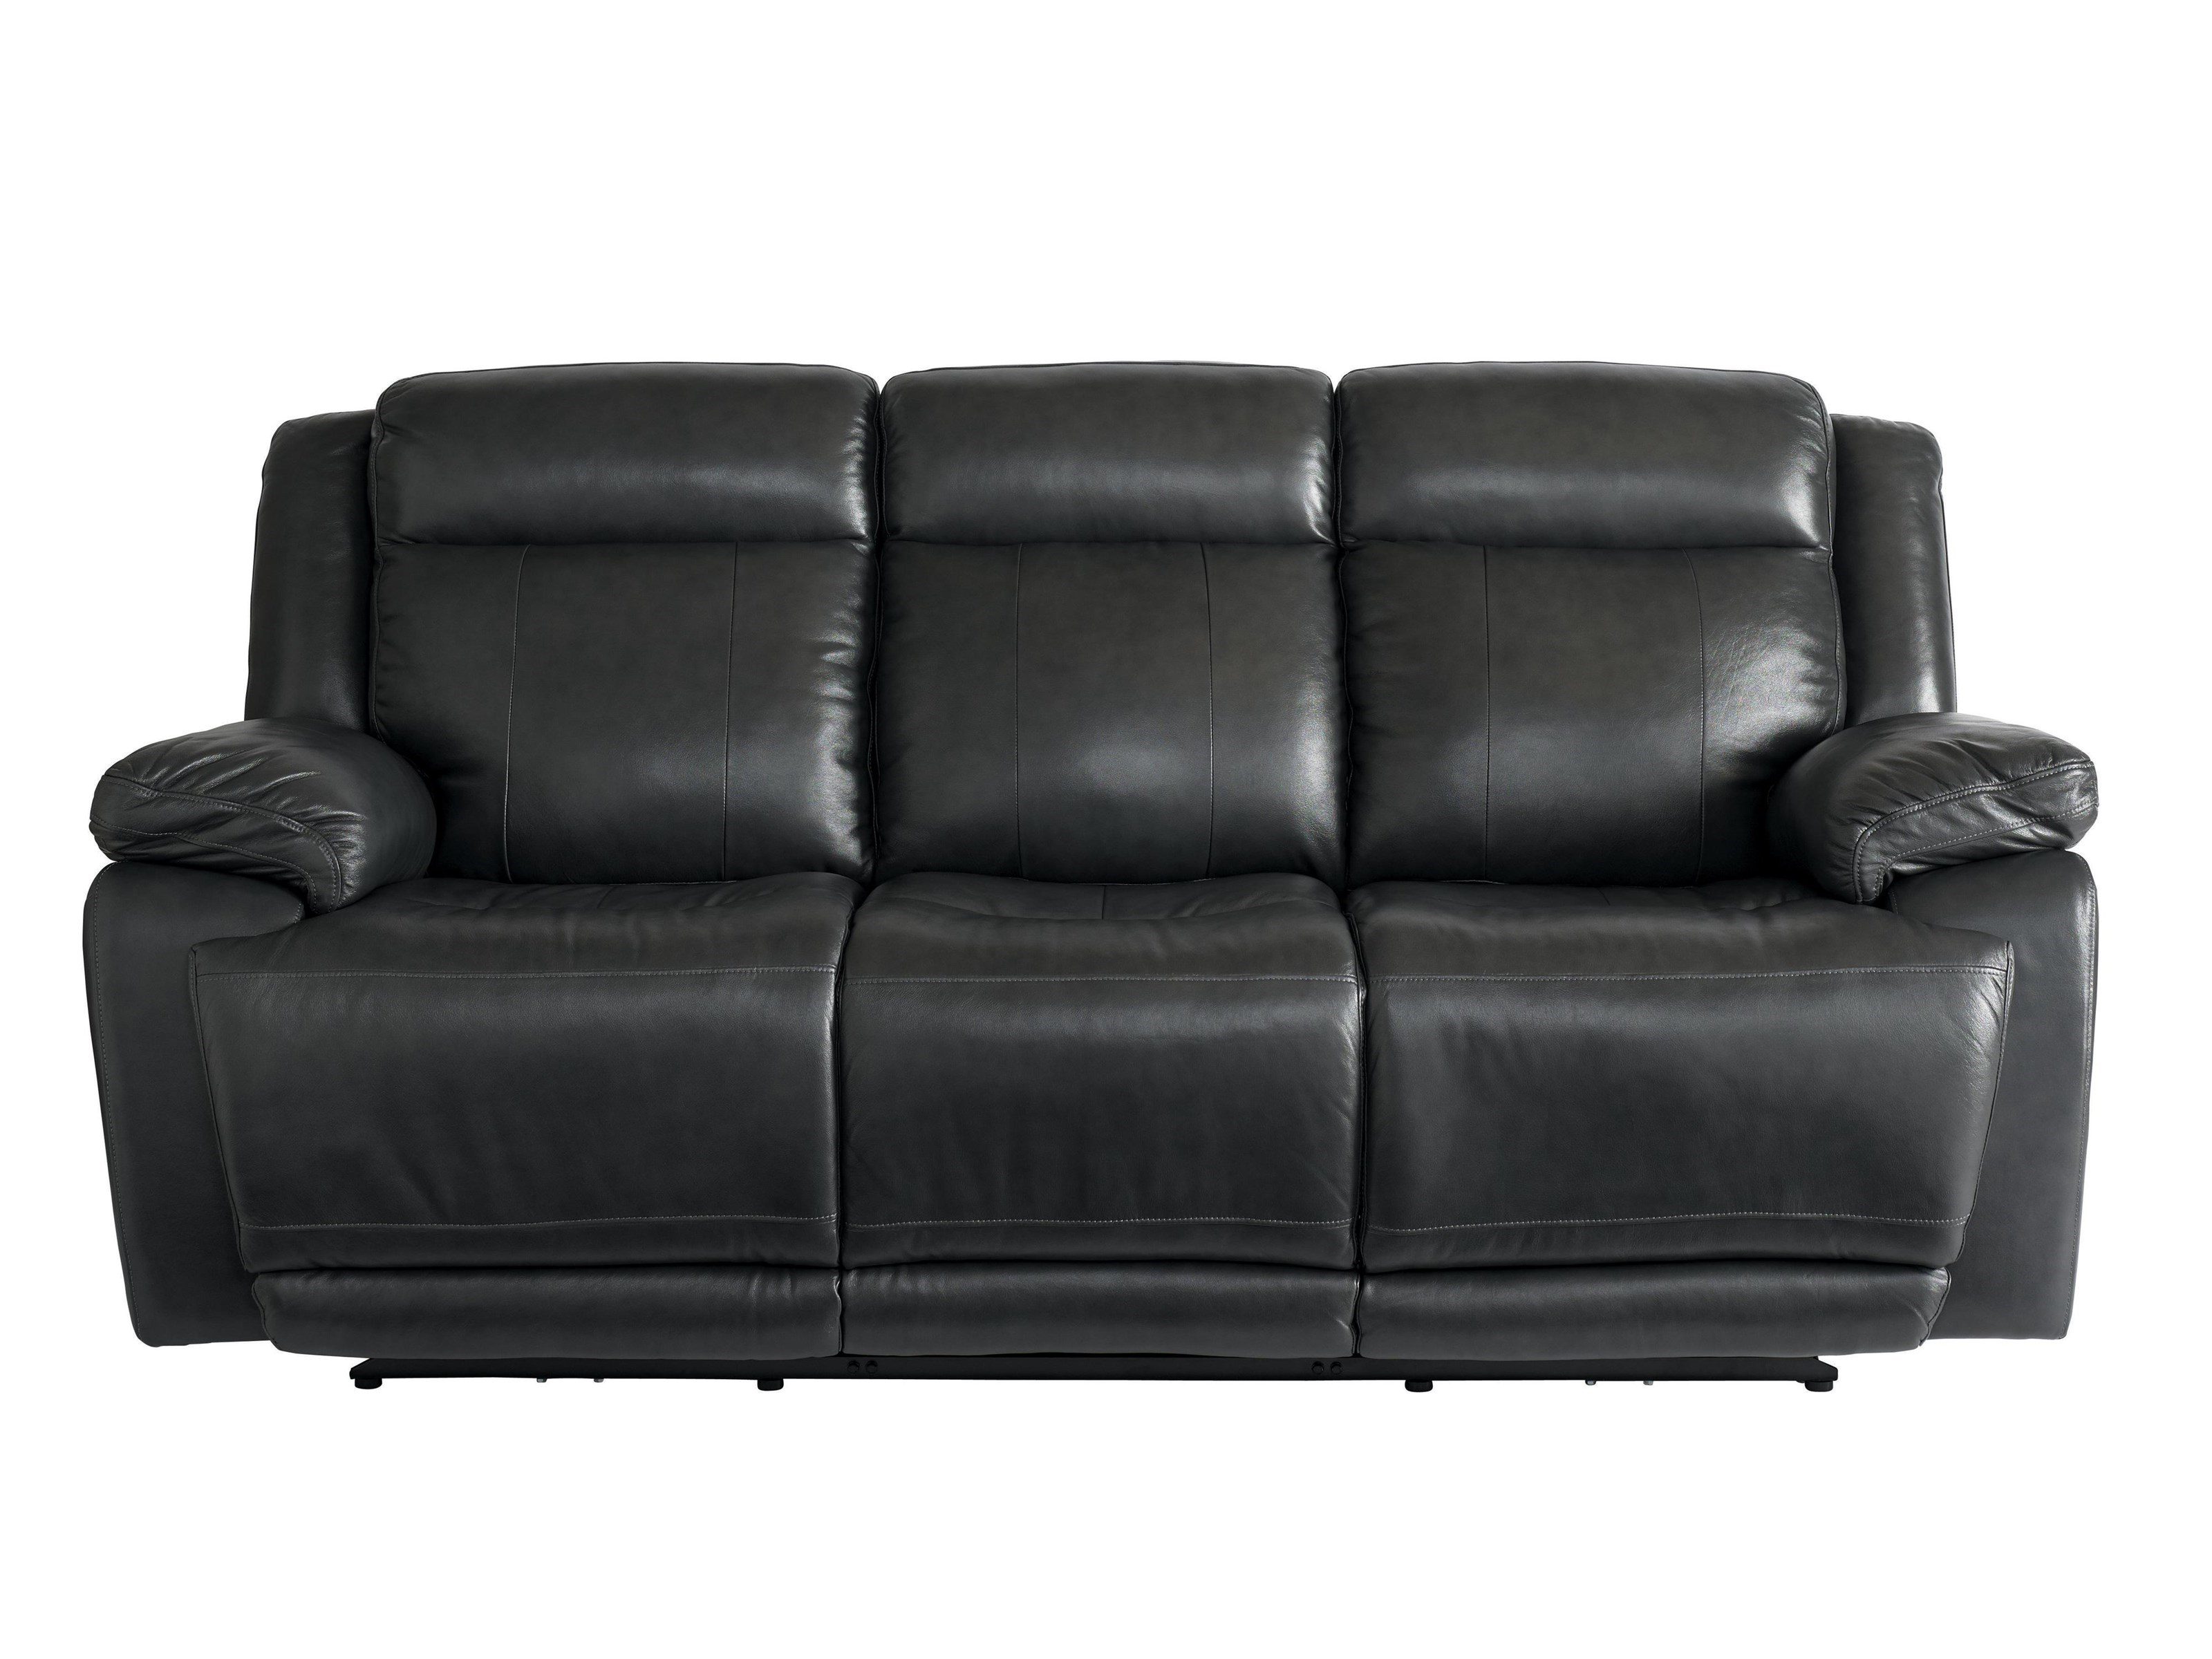 Etonnant Bassett Club Level Evo Graphite Leather Power Reclining Sofa With Power  Head U0026 Footrests